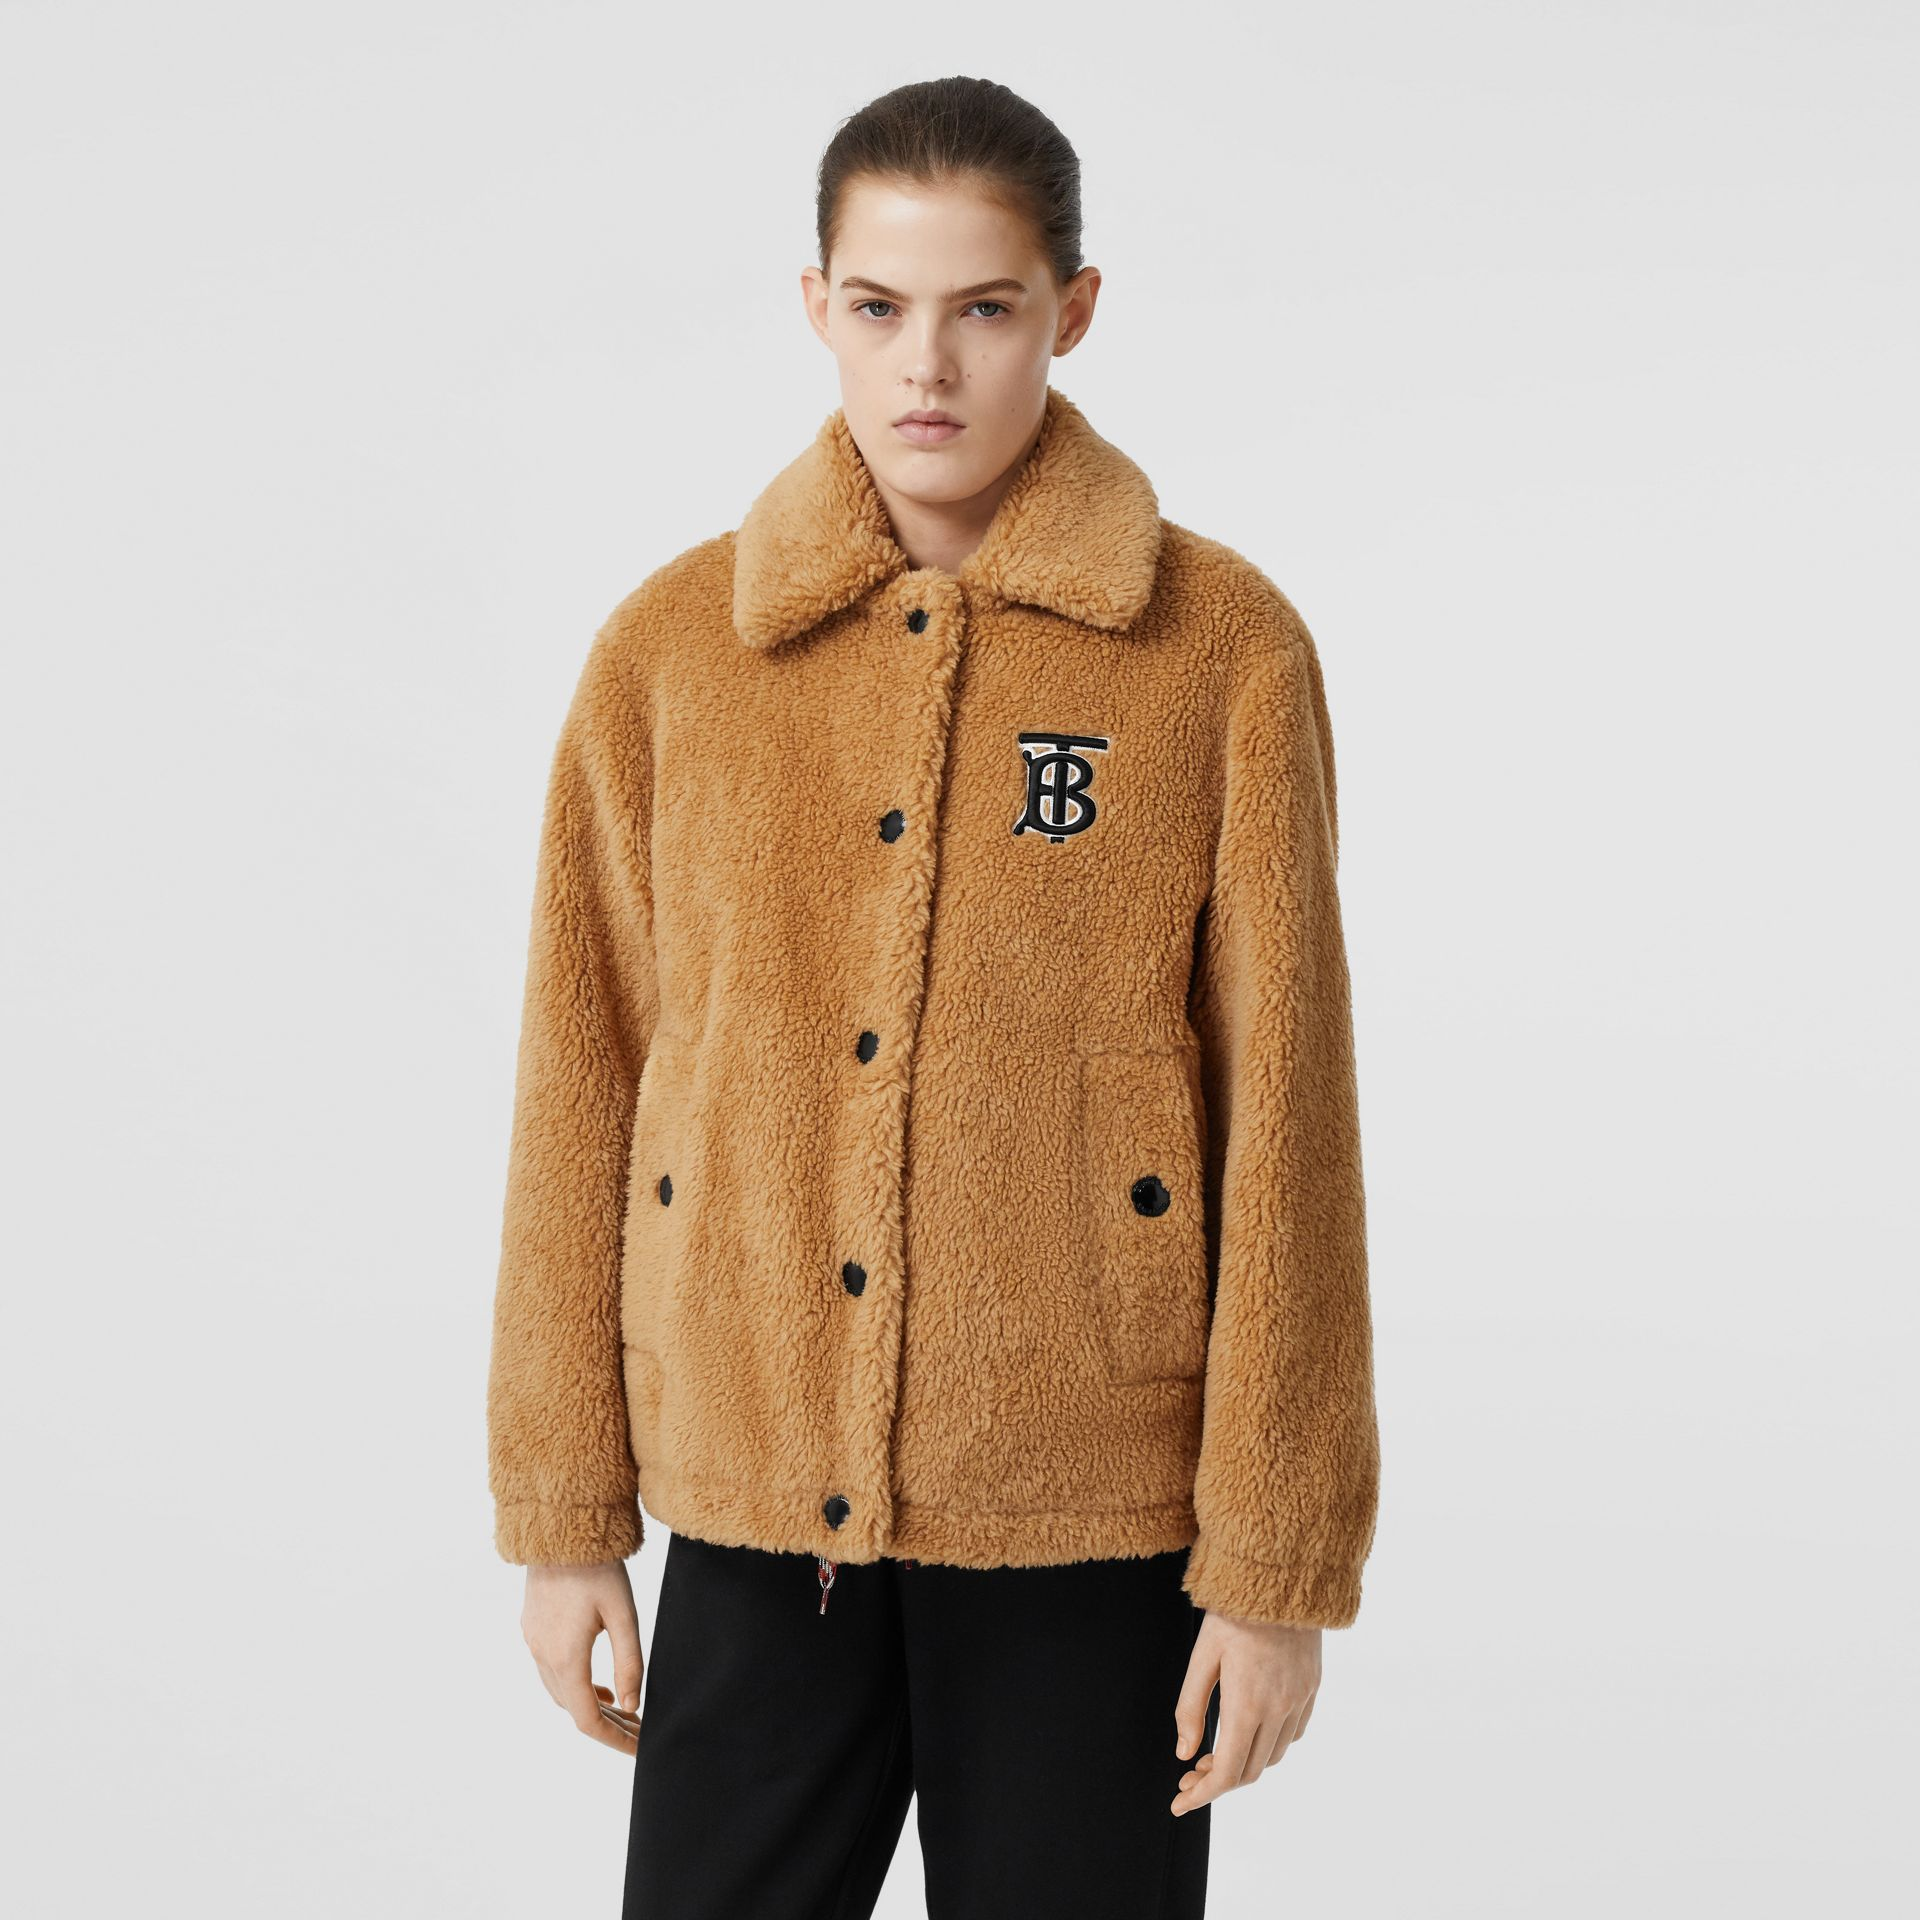 Monogram Motif Fleece Jacket in Camel - Women | Burberry - gallery image 4